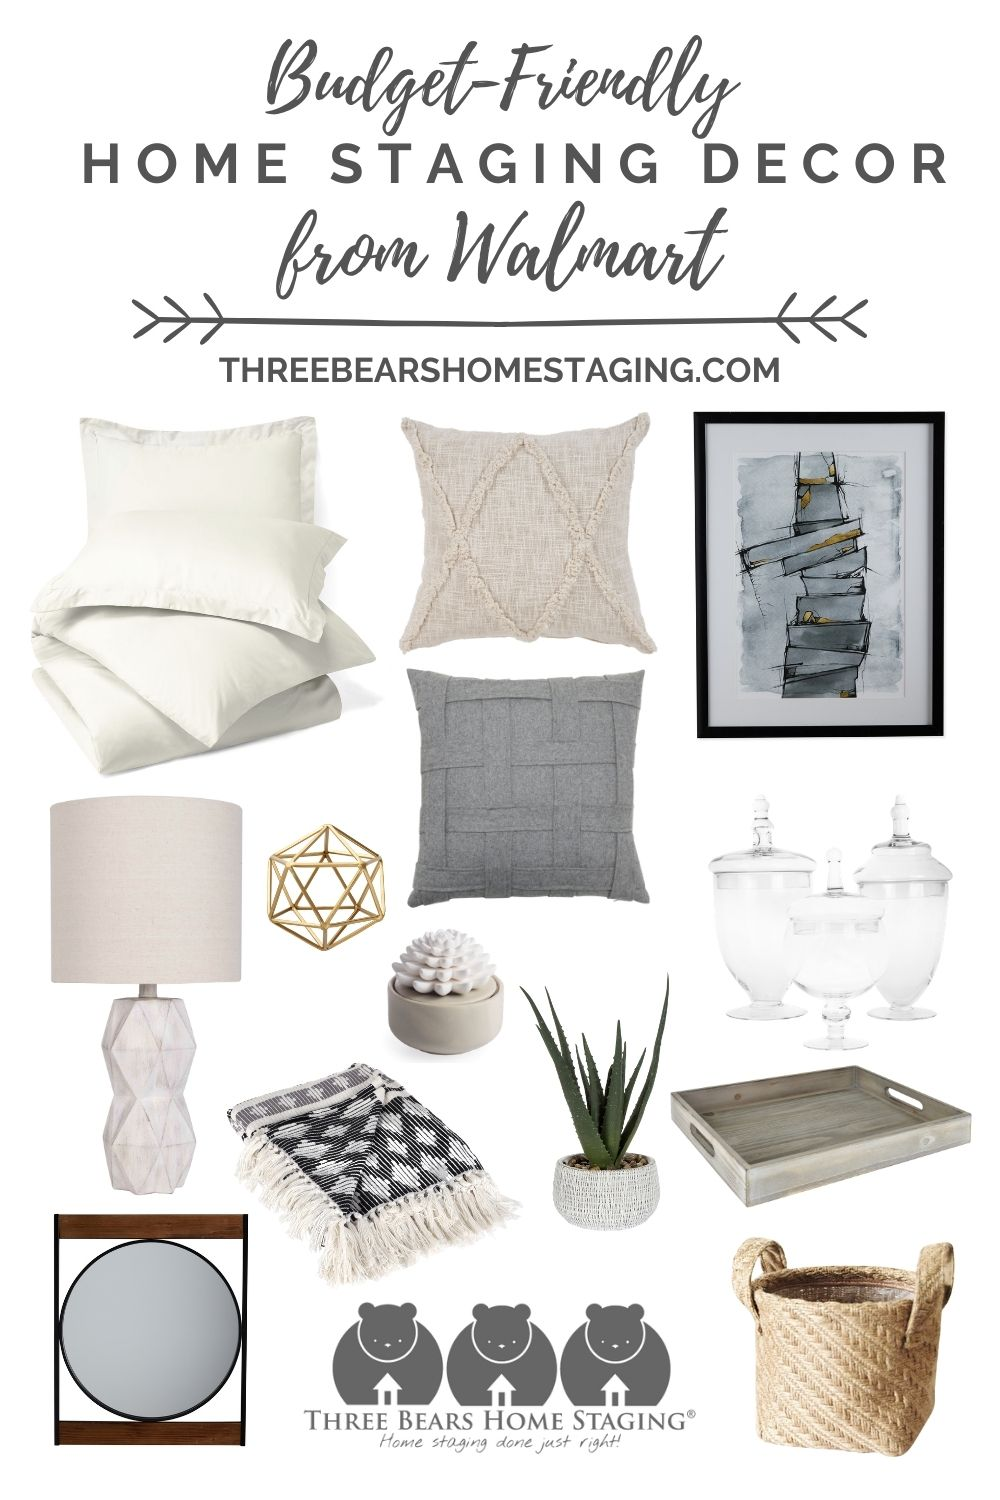 budget friendly home staging decor from Walmart